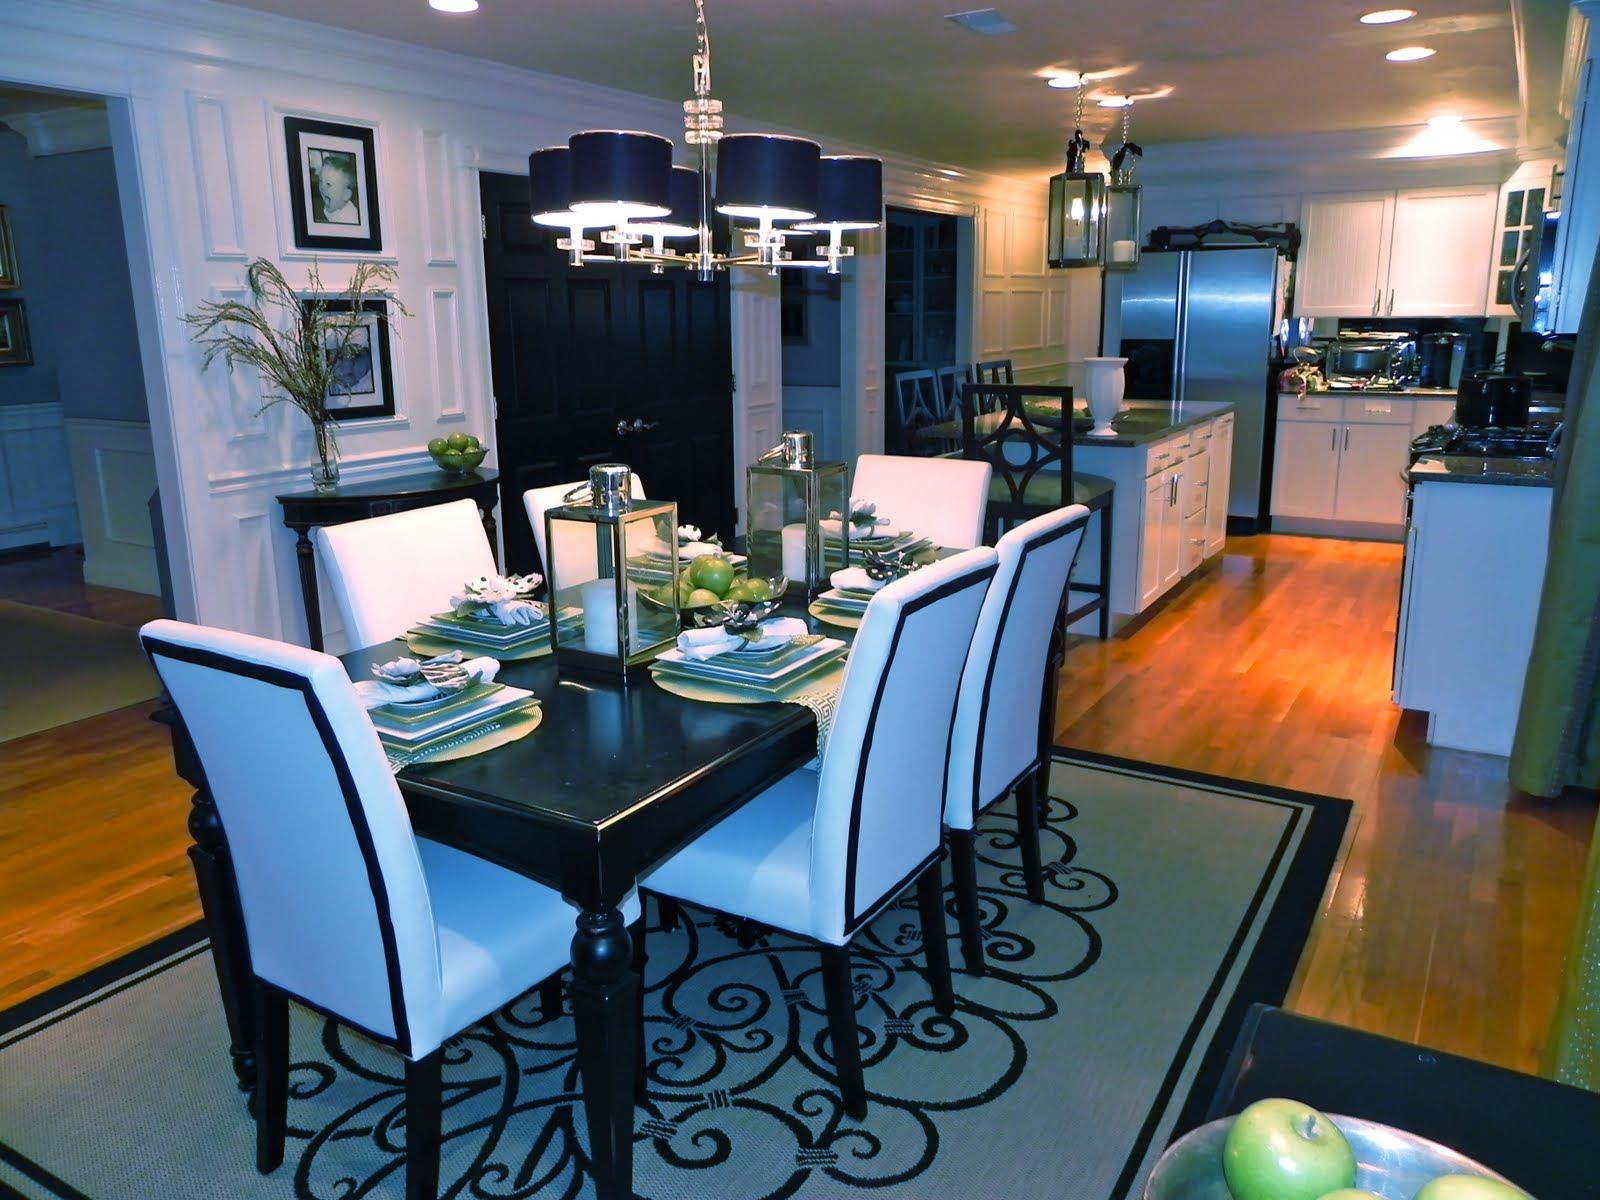 Best Interior Decorating Blogs south shore decorating blog: diy madness: three project reveals